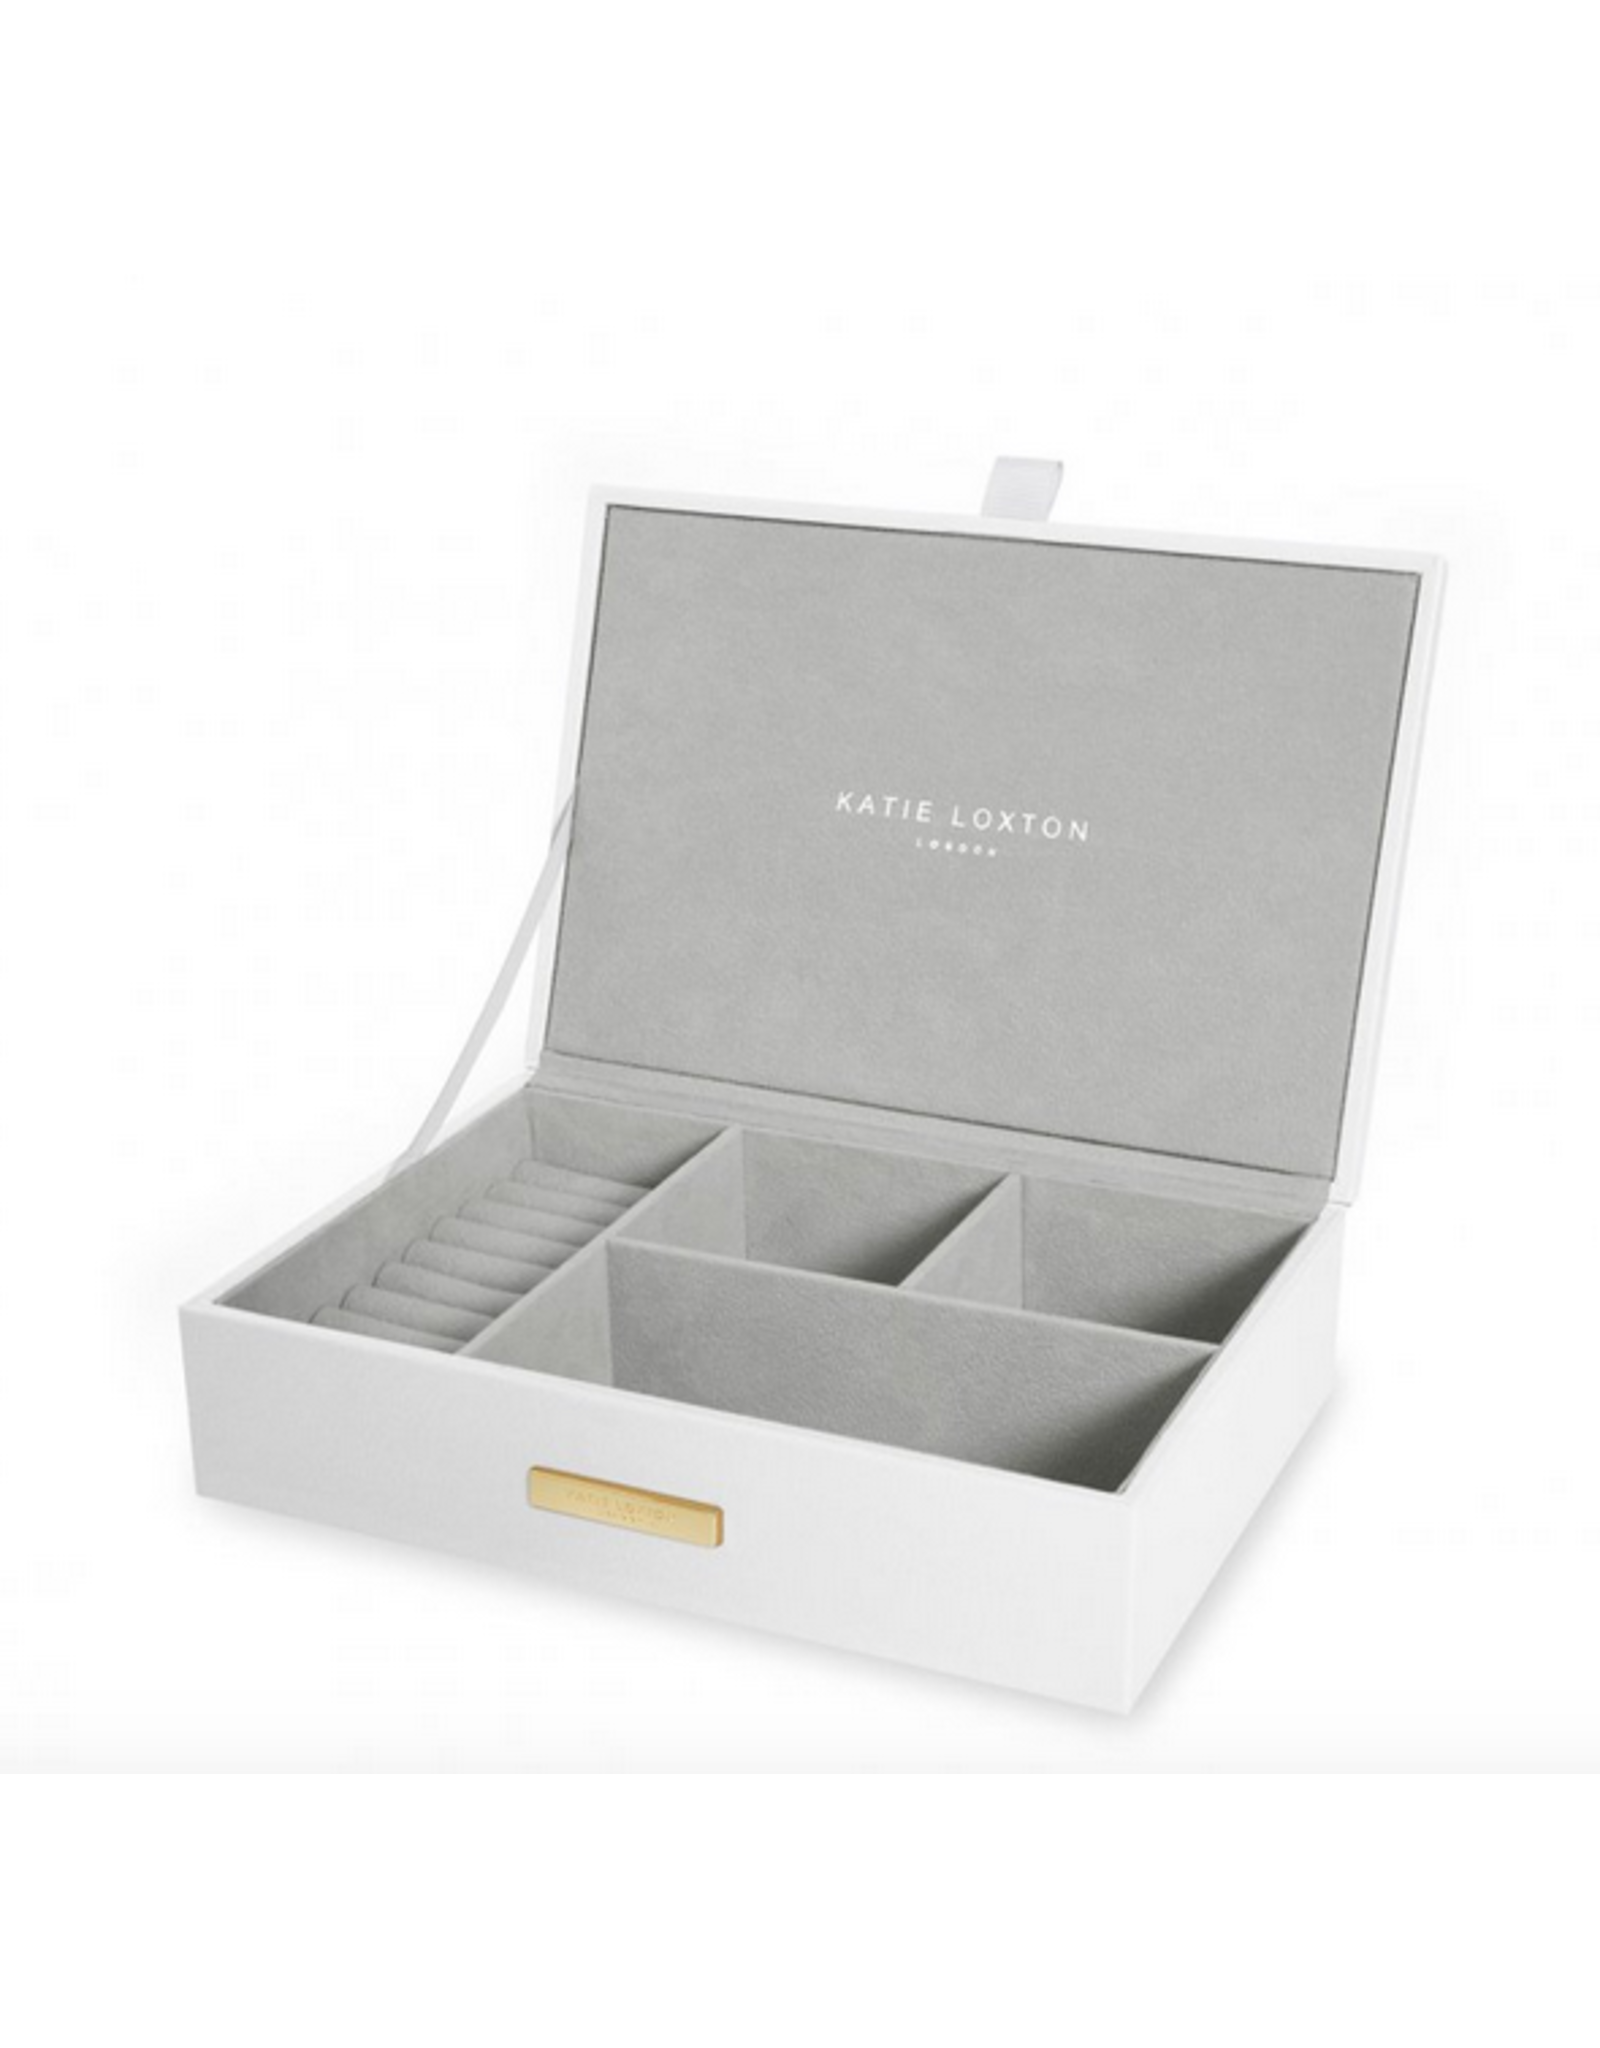 Katie Loxton Happily Ever After Jewelry Box in White